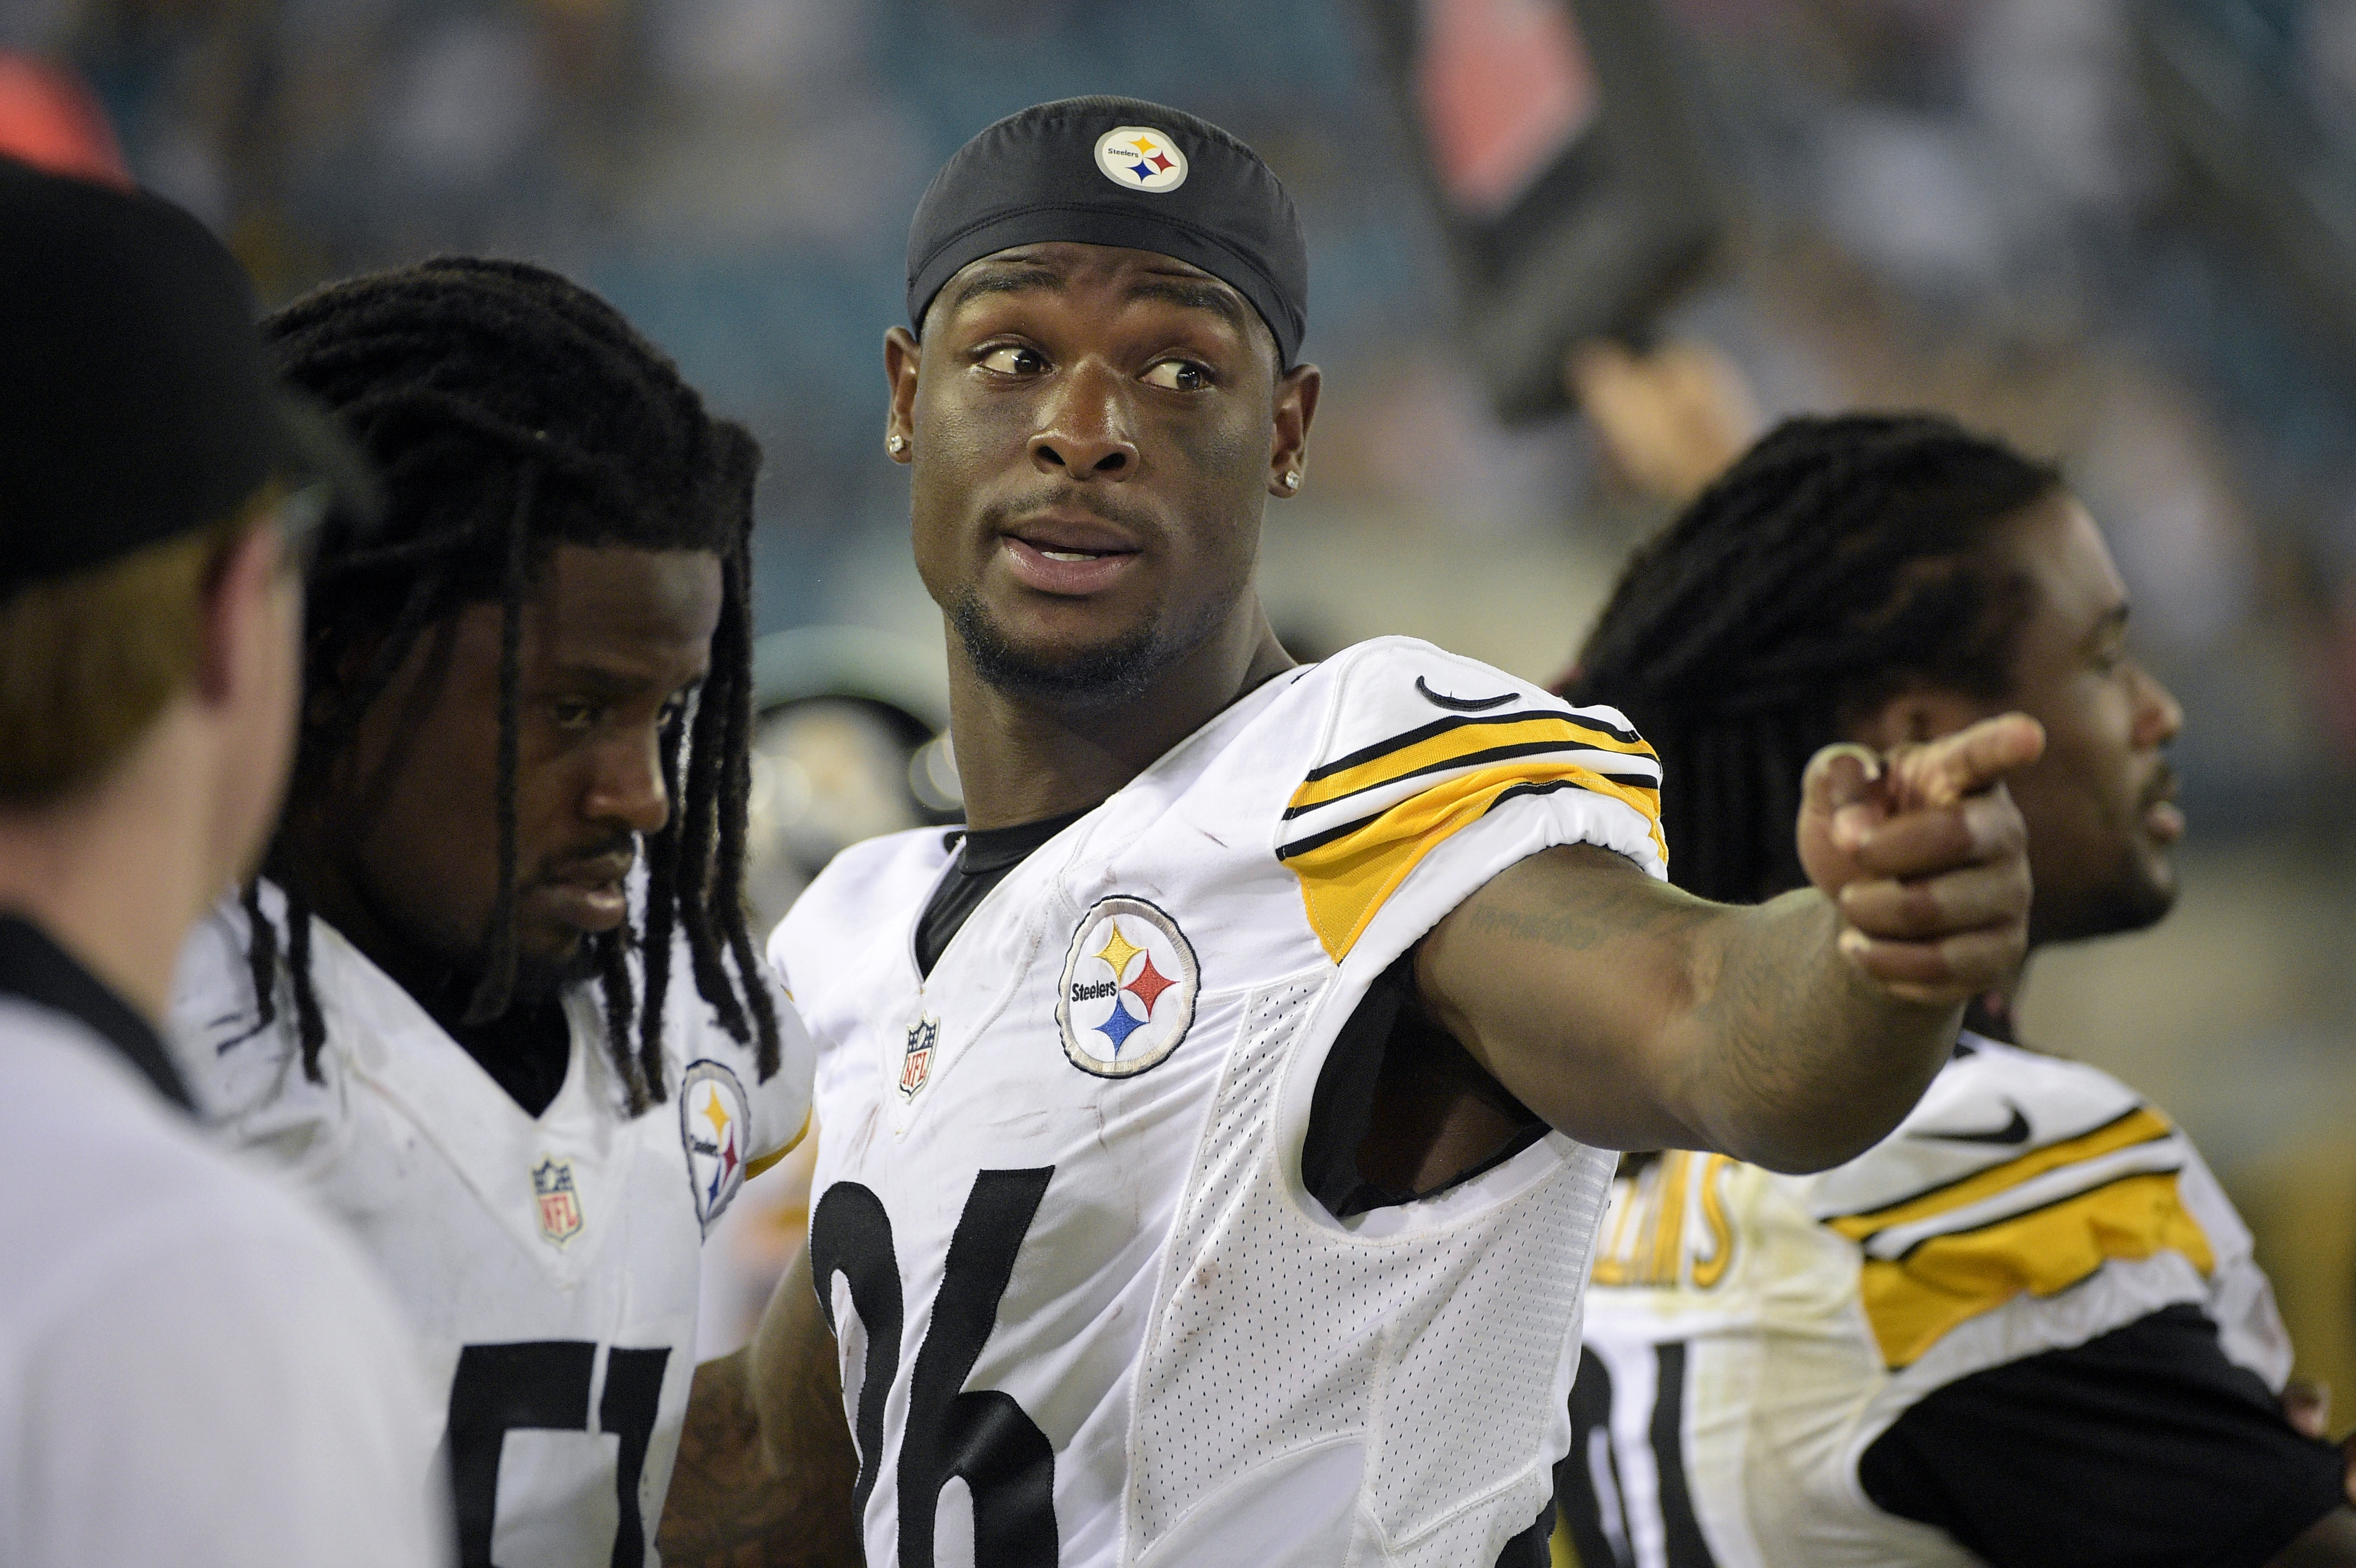 FILE - In this Aug. 14, 2015, file photo,Pittsburgh Steelers running back Le'Veon Bell, center, gestures on the sideline during the second half of an NFL preseason football game against the Jacksonville Jaguars in Jacksonville, Fla. Several teams will be